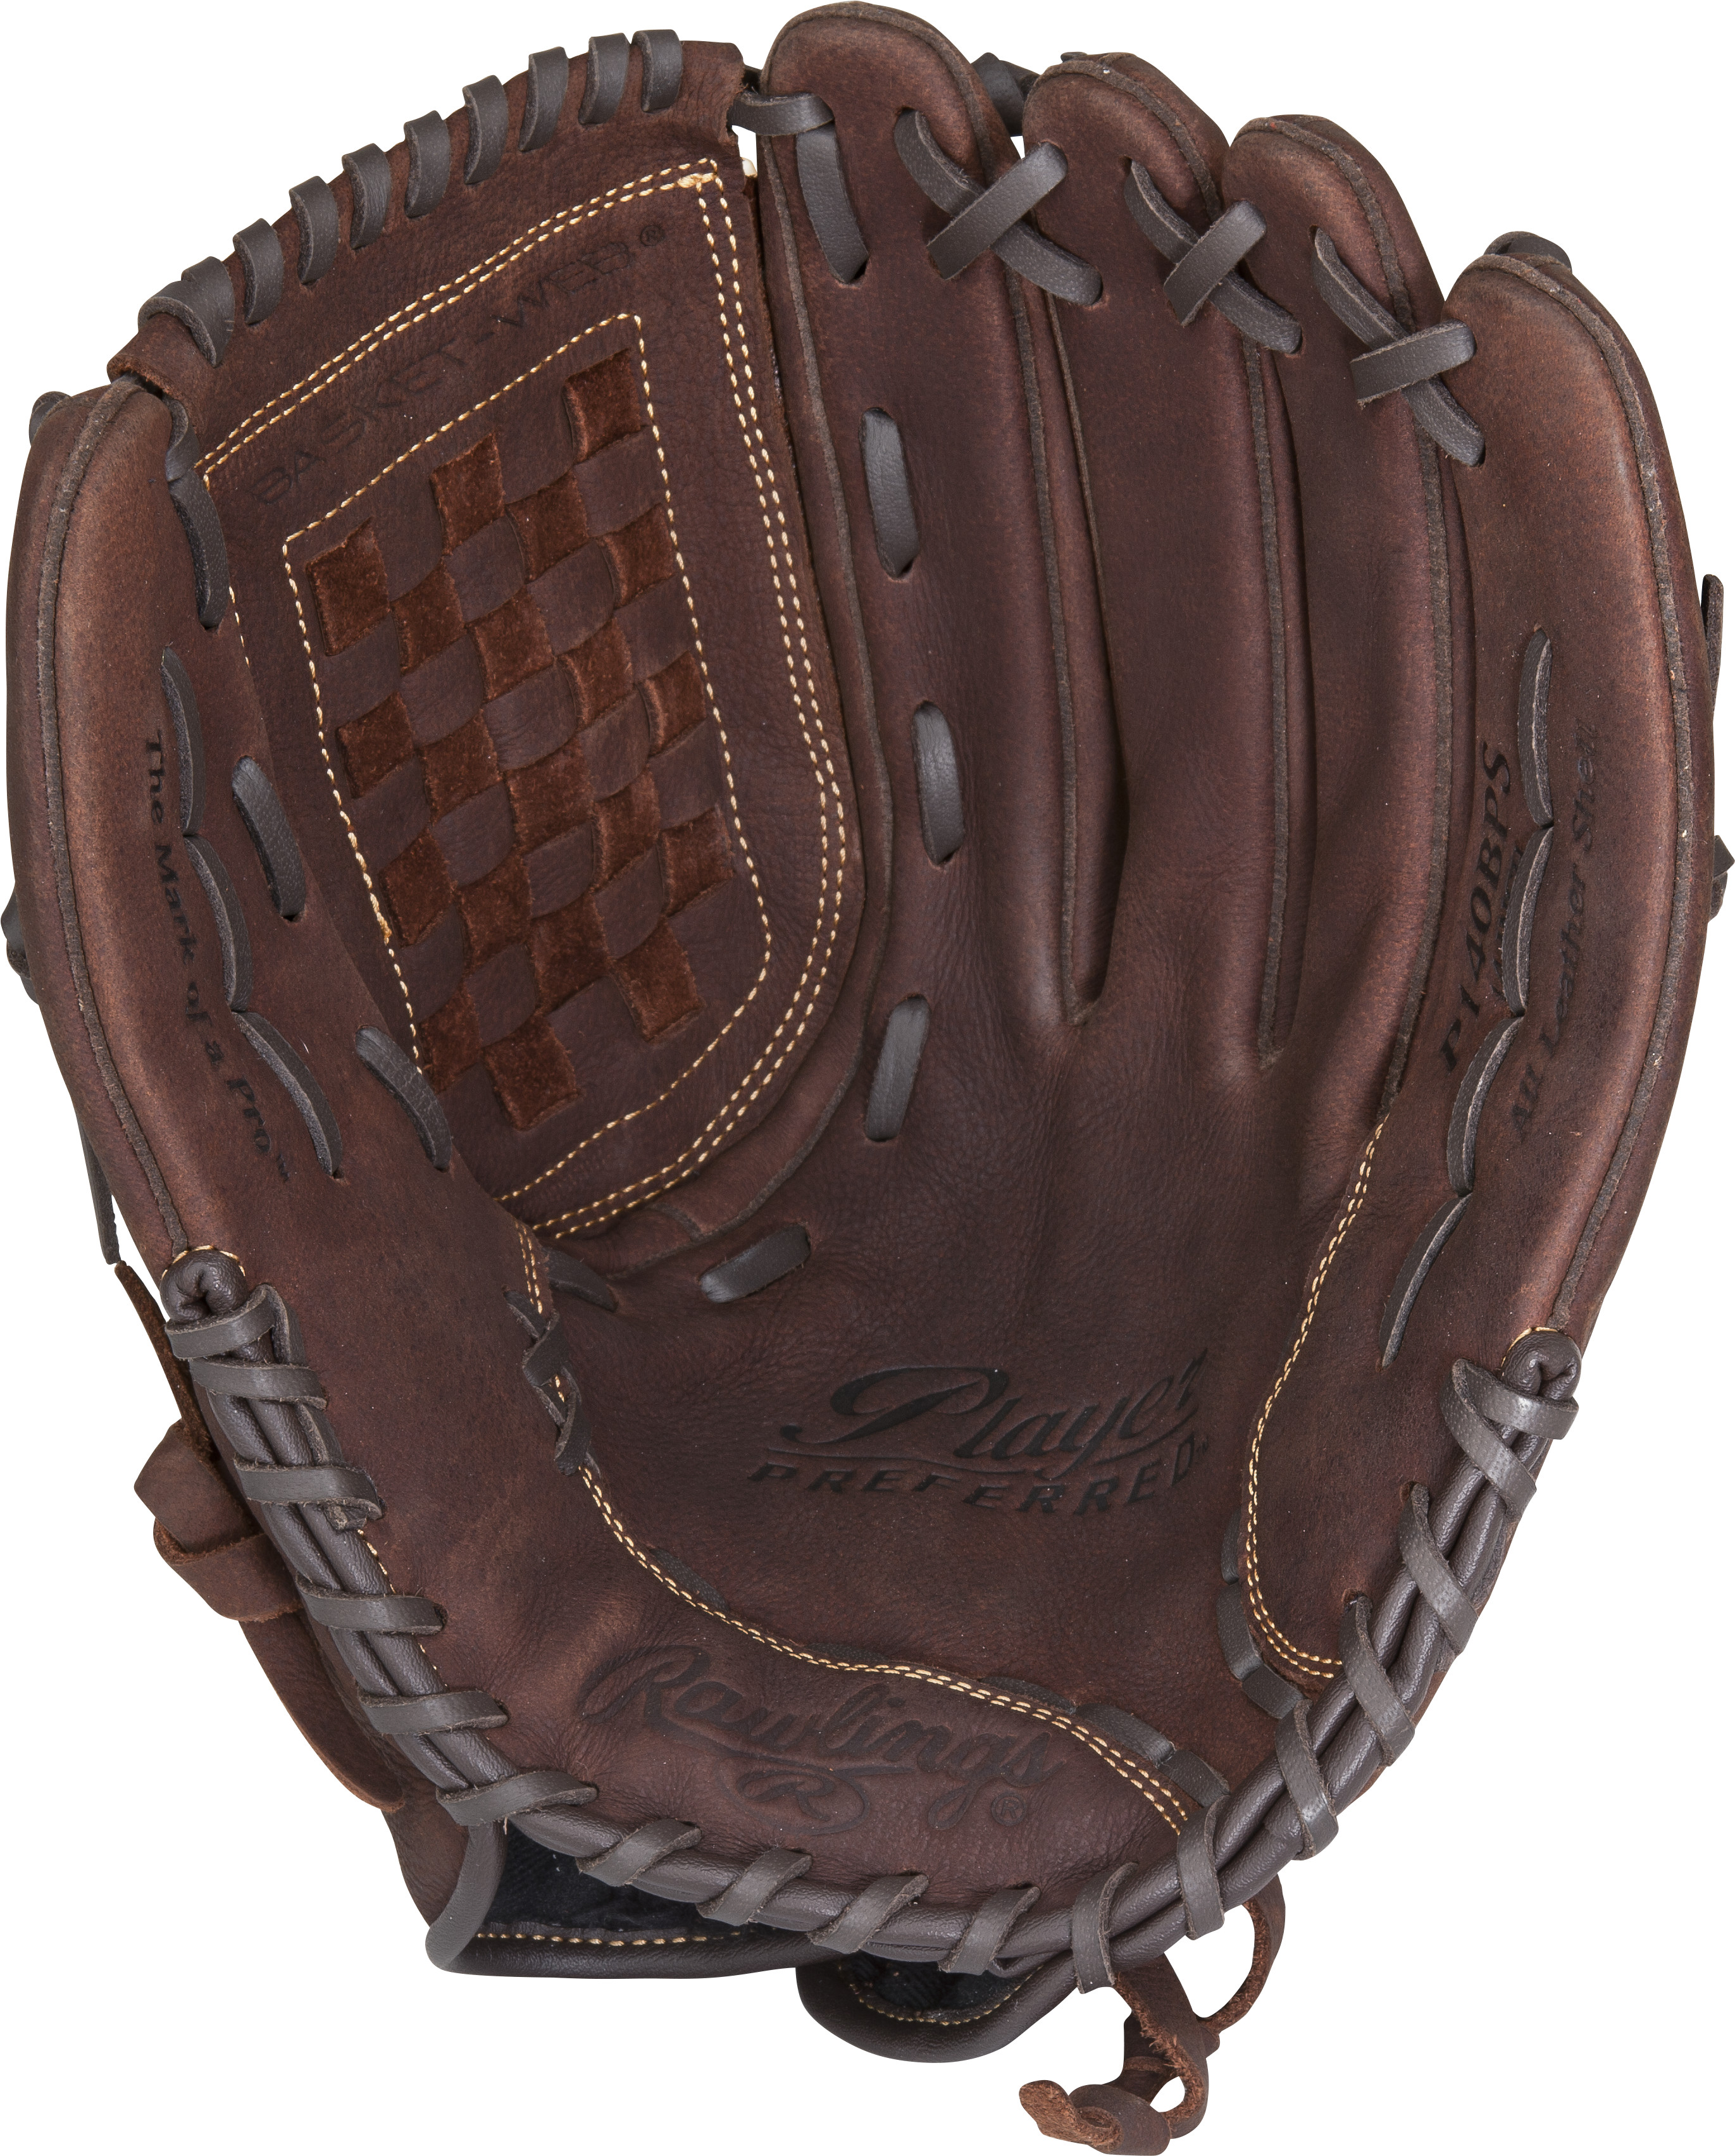 http://www.bestbatdeals.com/images/gloves/rawlings/P140BPS_palm.jpg